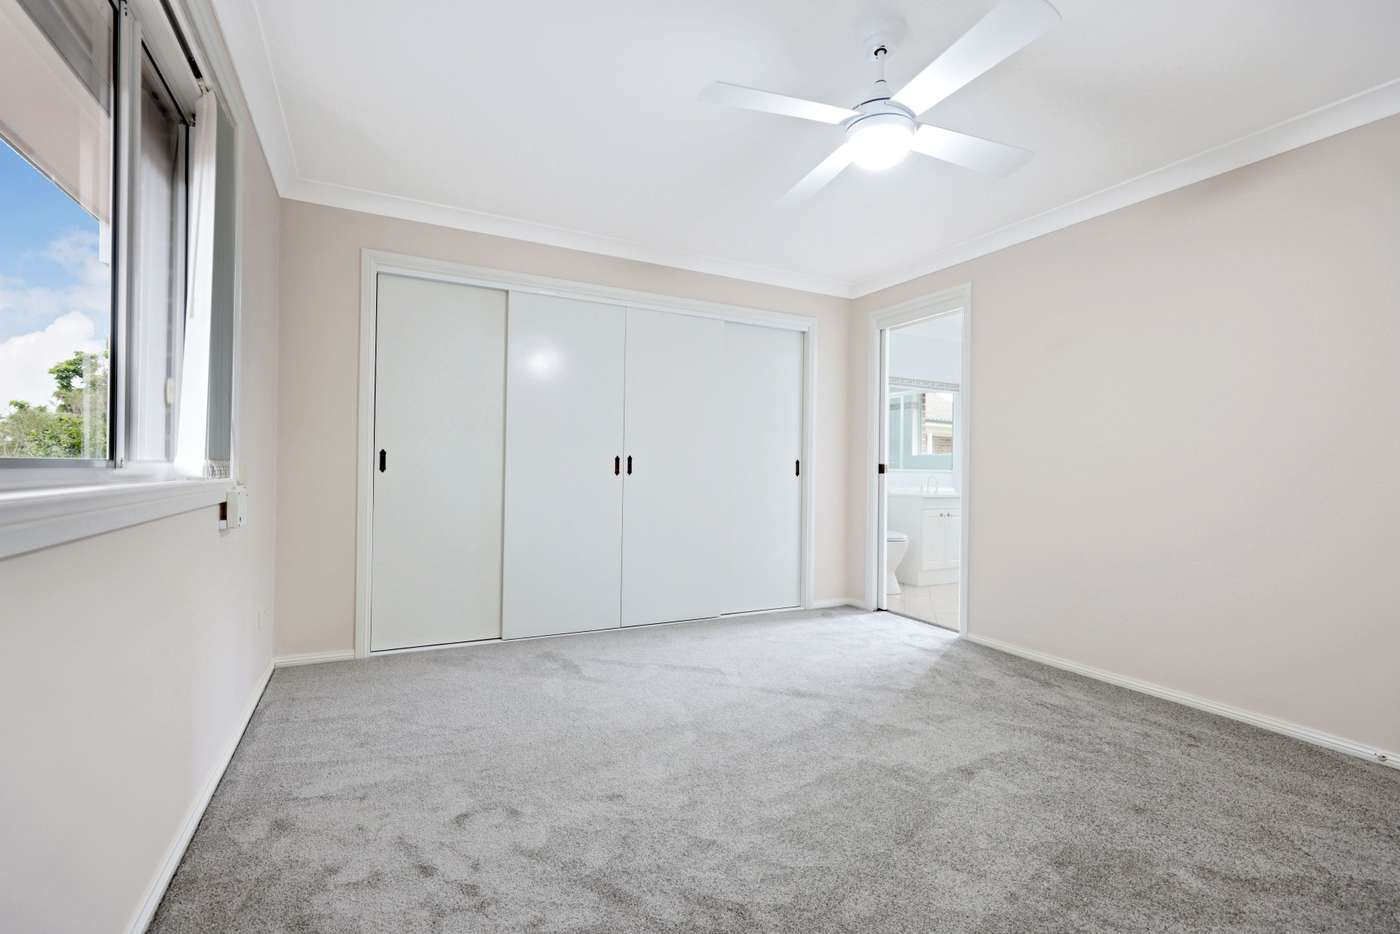 Sixth view of Homely house listing, 5 Elata Place, Kingswood NSW 2747